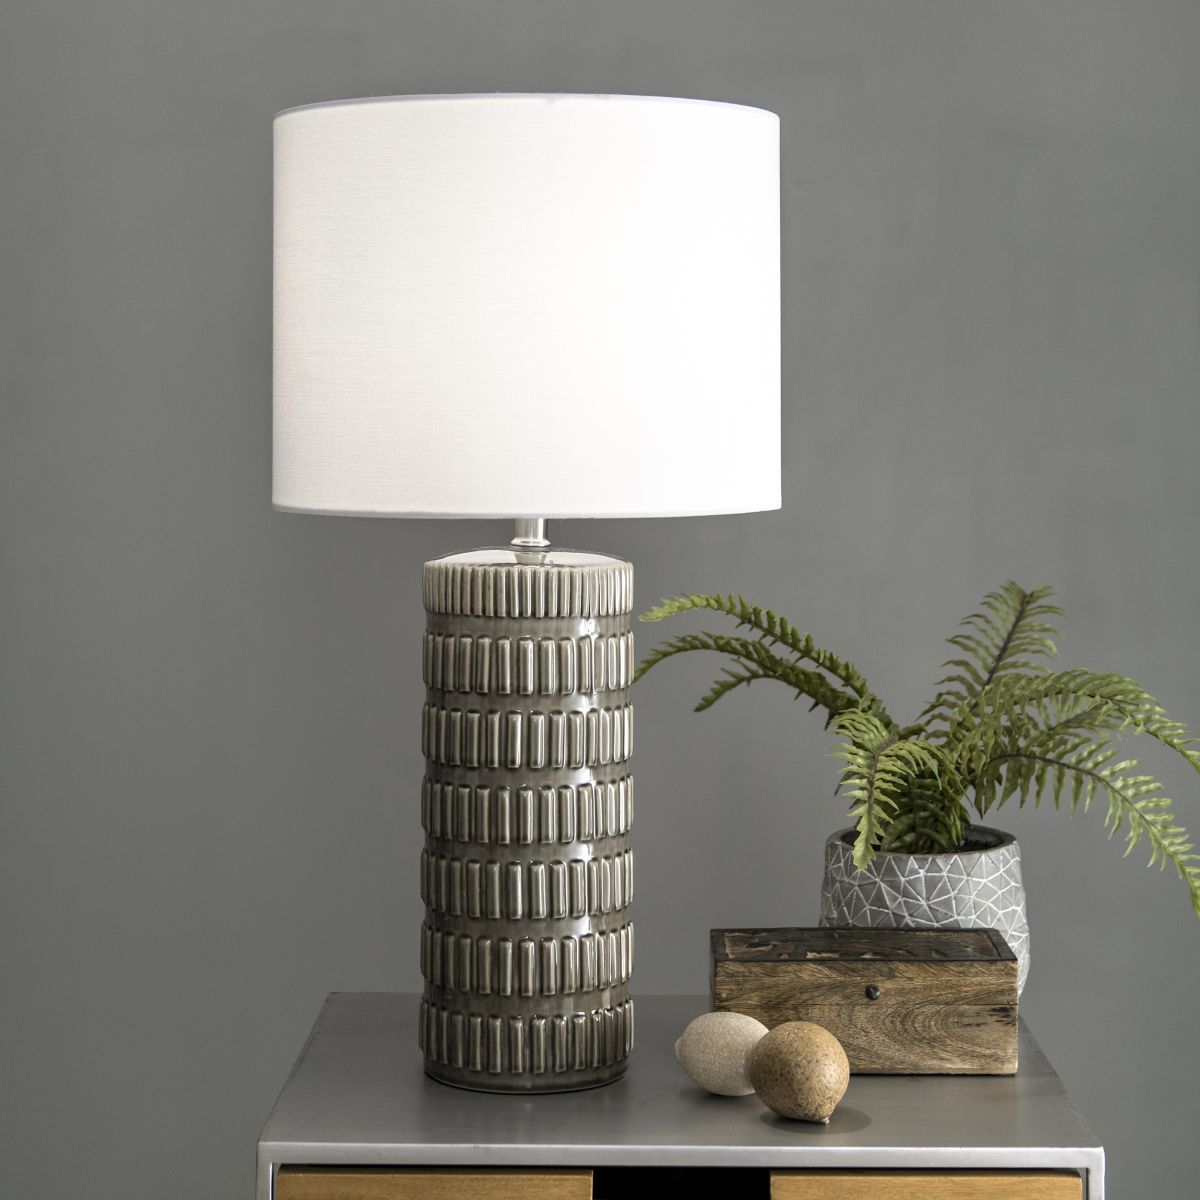 Alva 25 Inch Tangela Ridged Ceramic Table Lamp Grey Lamp In 2020 Grey Table Lamps Table Lamp Ceramic Table Lamps